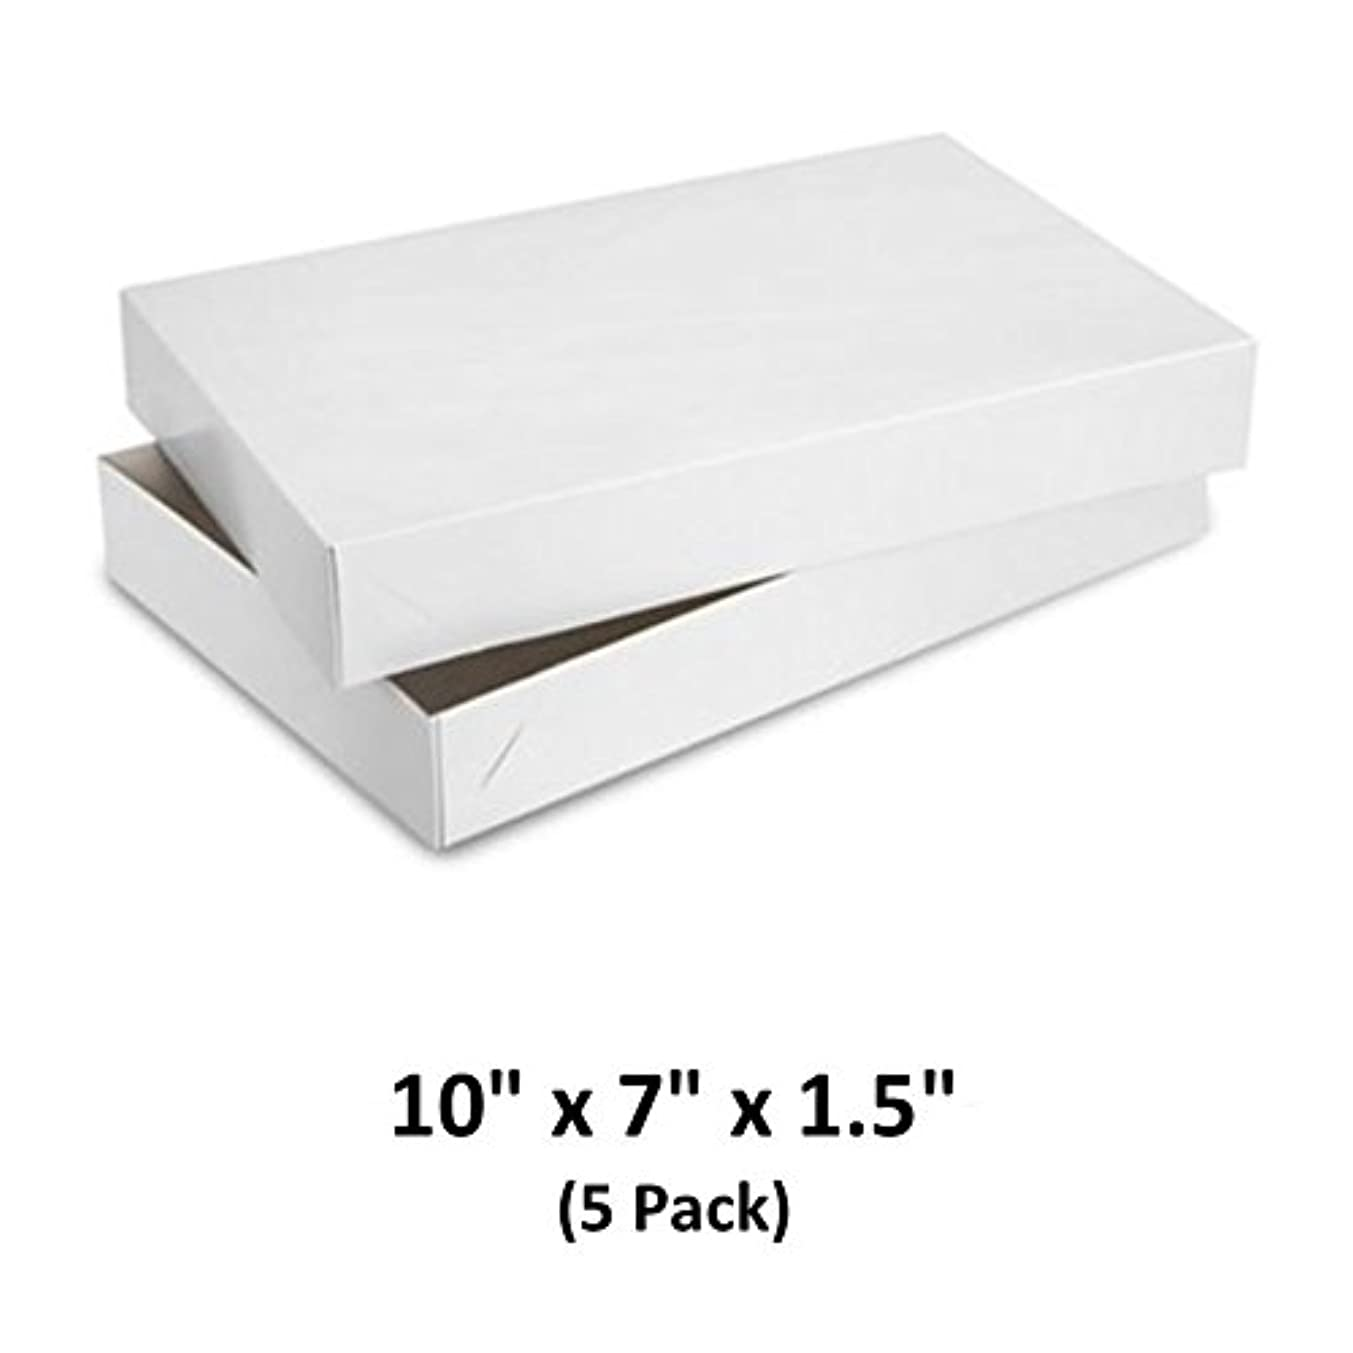 White Gloss Cardboard Apparel Decorative Gift Boxes with Lids for Clothing and Gifts, 10x7x1.5 (5 Pack) | MagicWater Supply